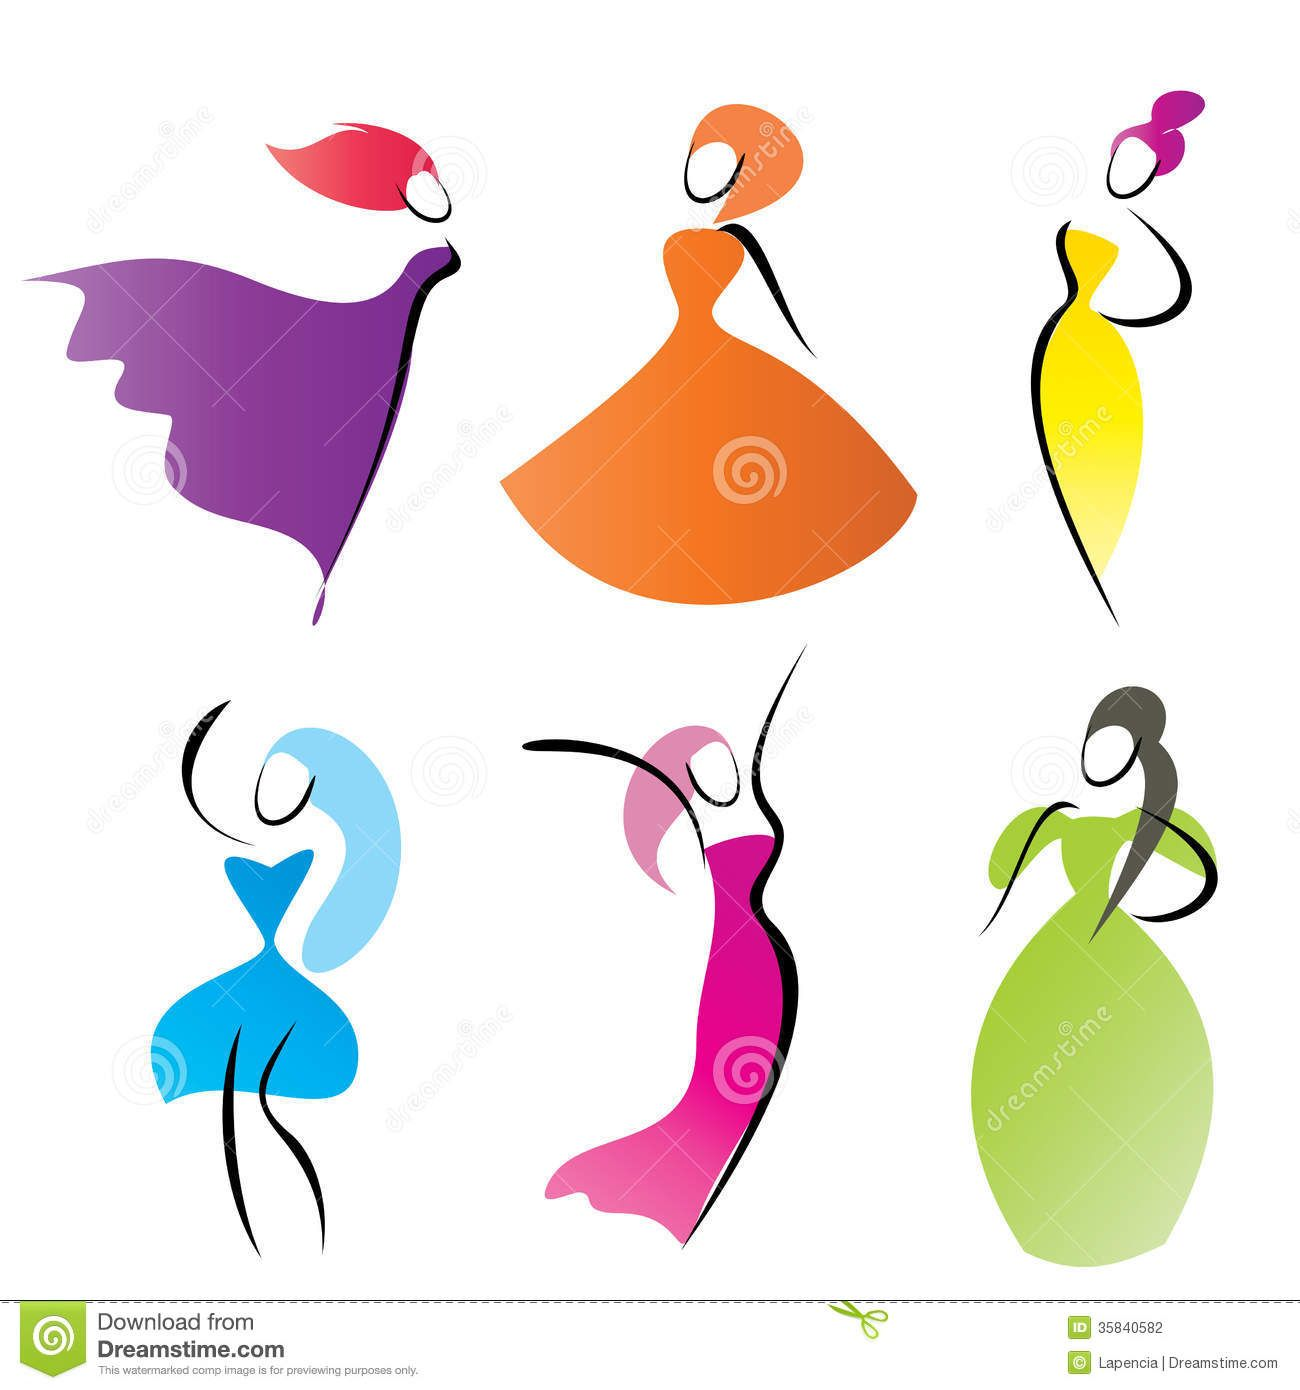 Images For   Women Empowerment Symbol. Images For   Women Empowerment Symbol   empowerment   Pinterest